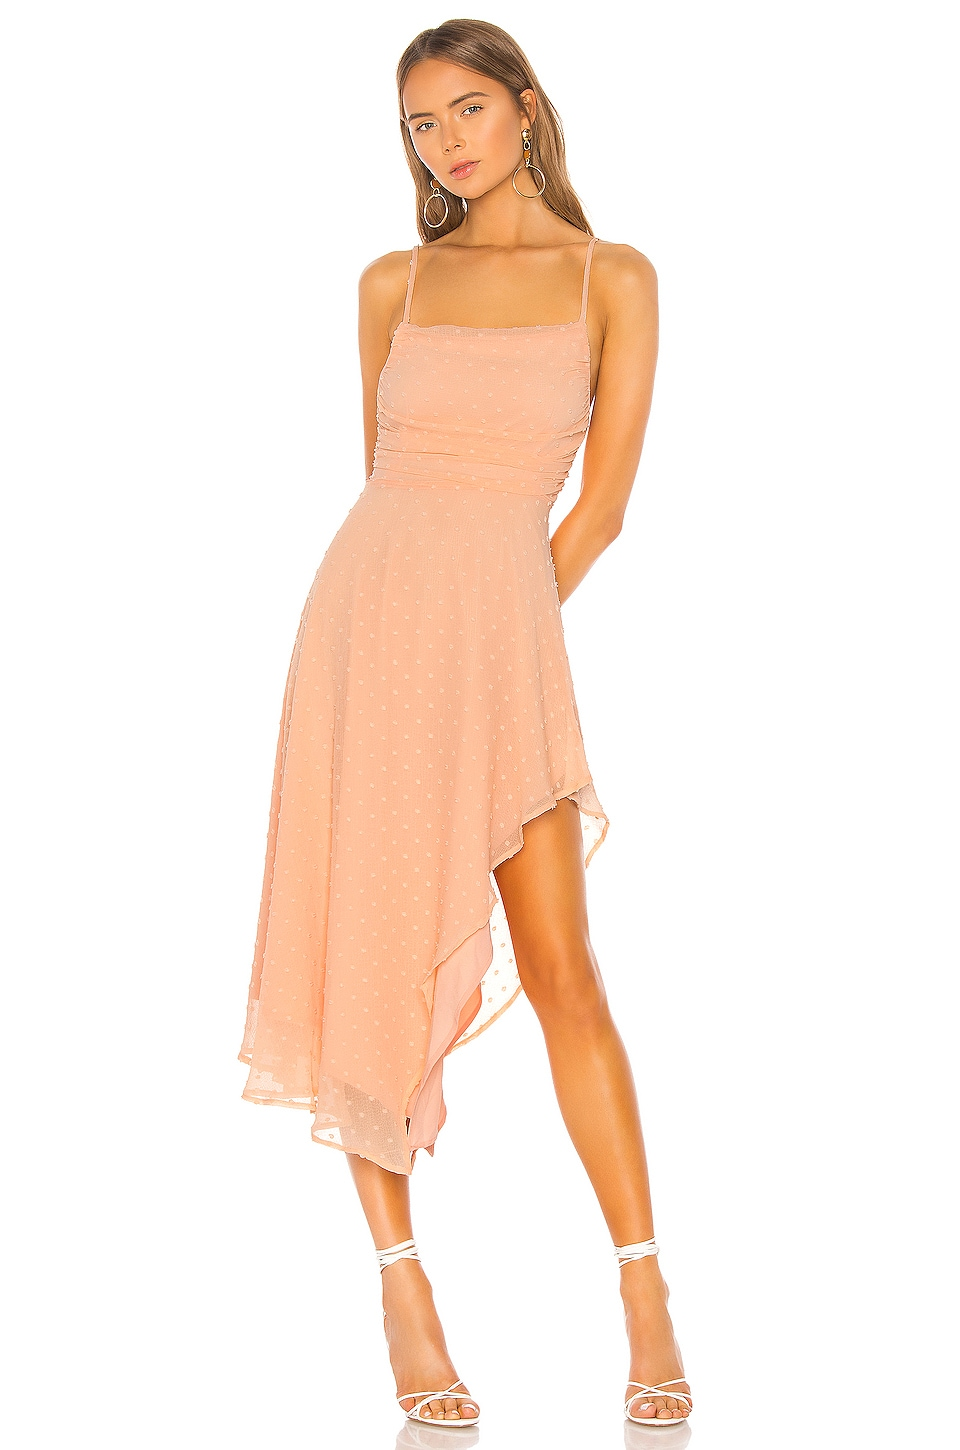 NBD Yvonne Midi Dress in Peach Nude